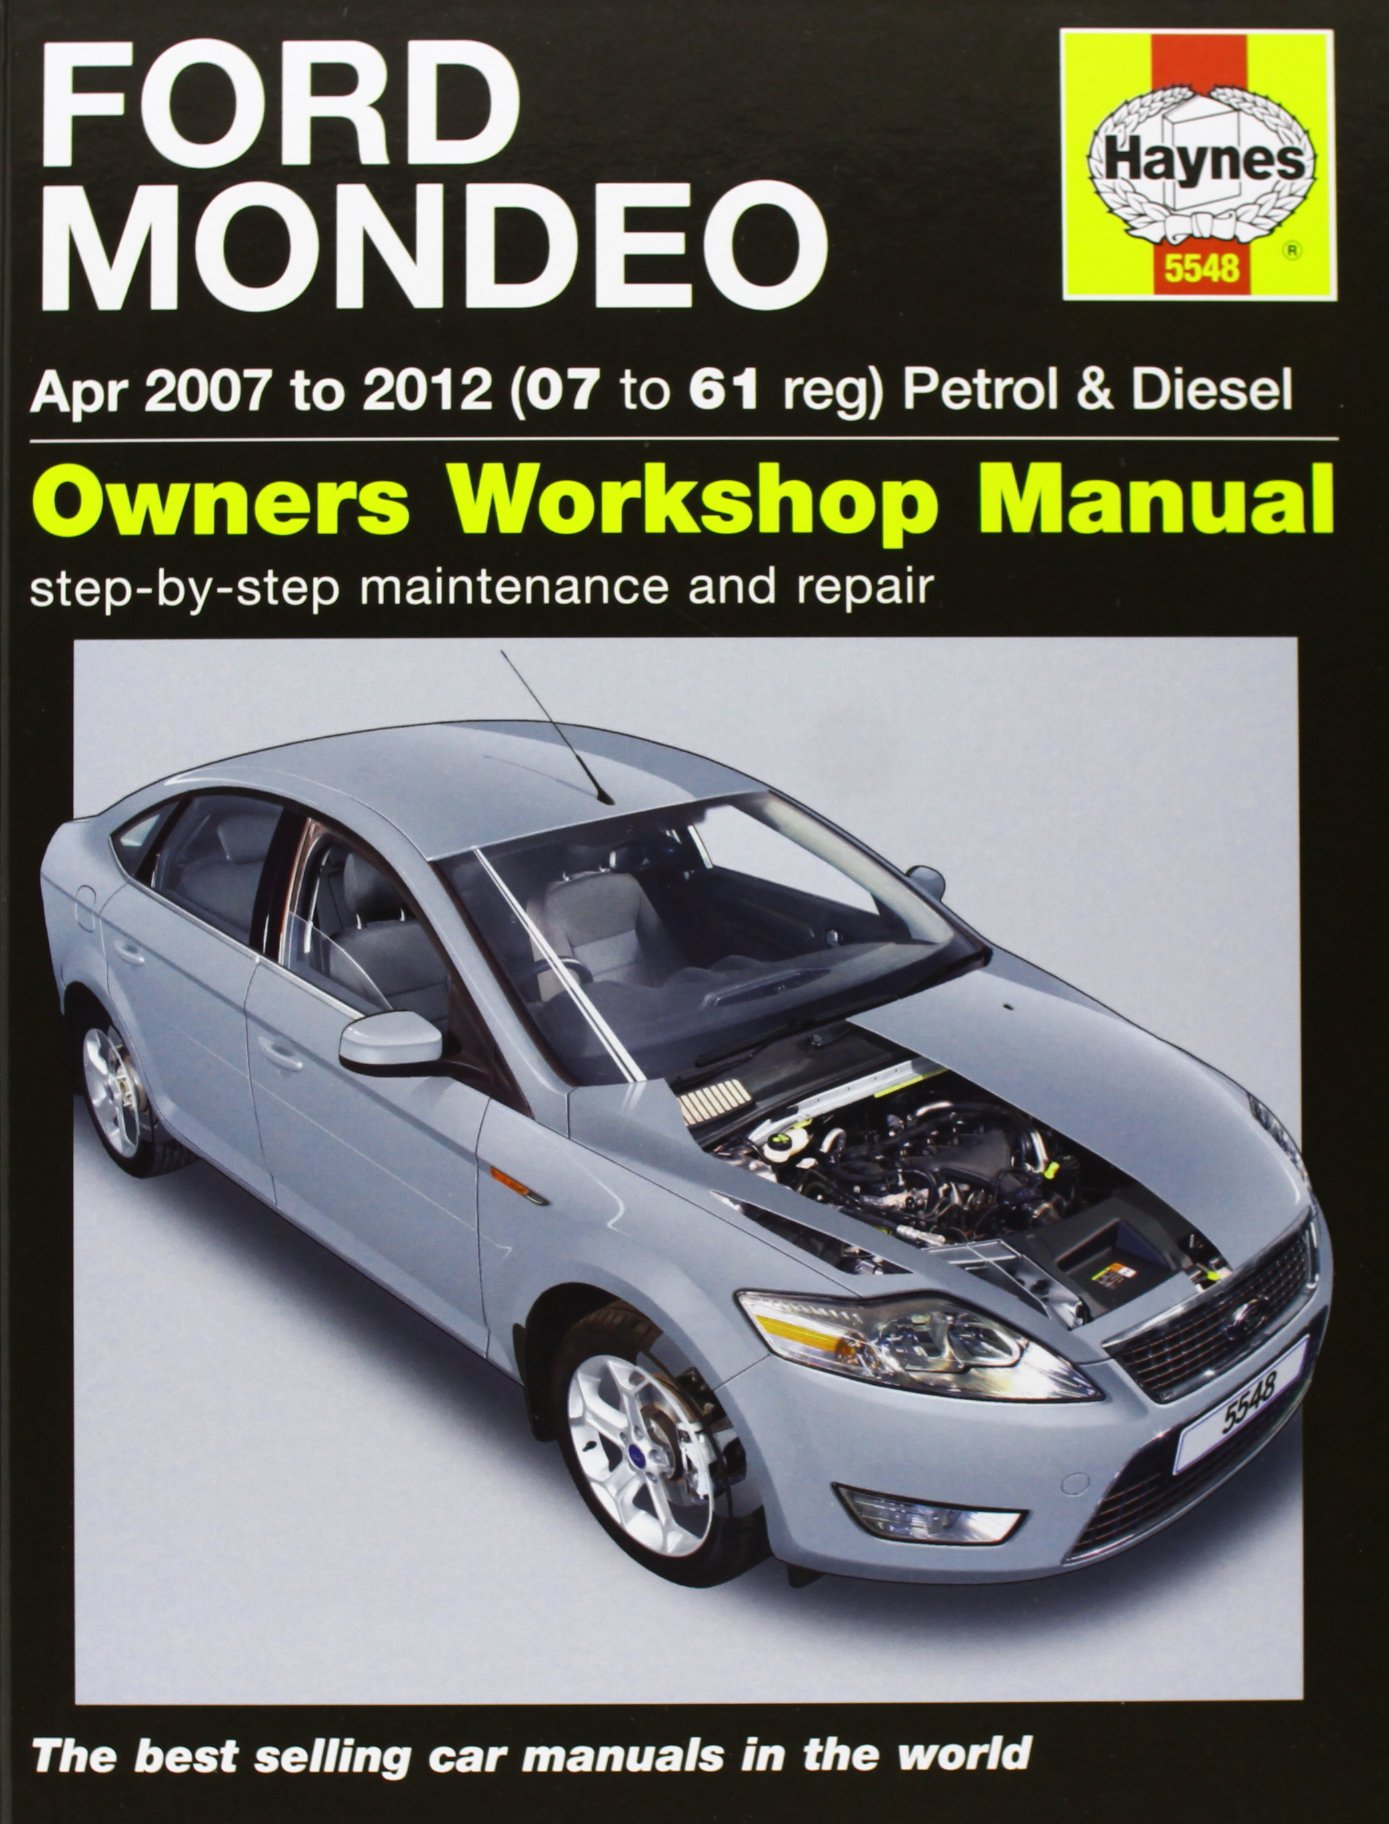 ford mondeo petrol diesel service and repair manual 2007 2012 rh amazon com Mondeo 2014 Mondeo 2010